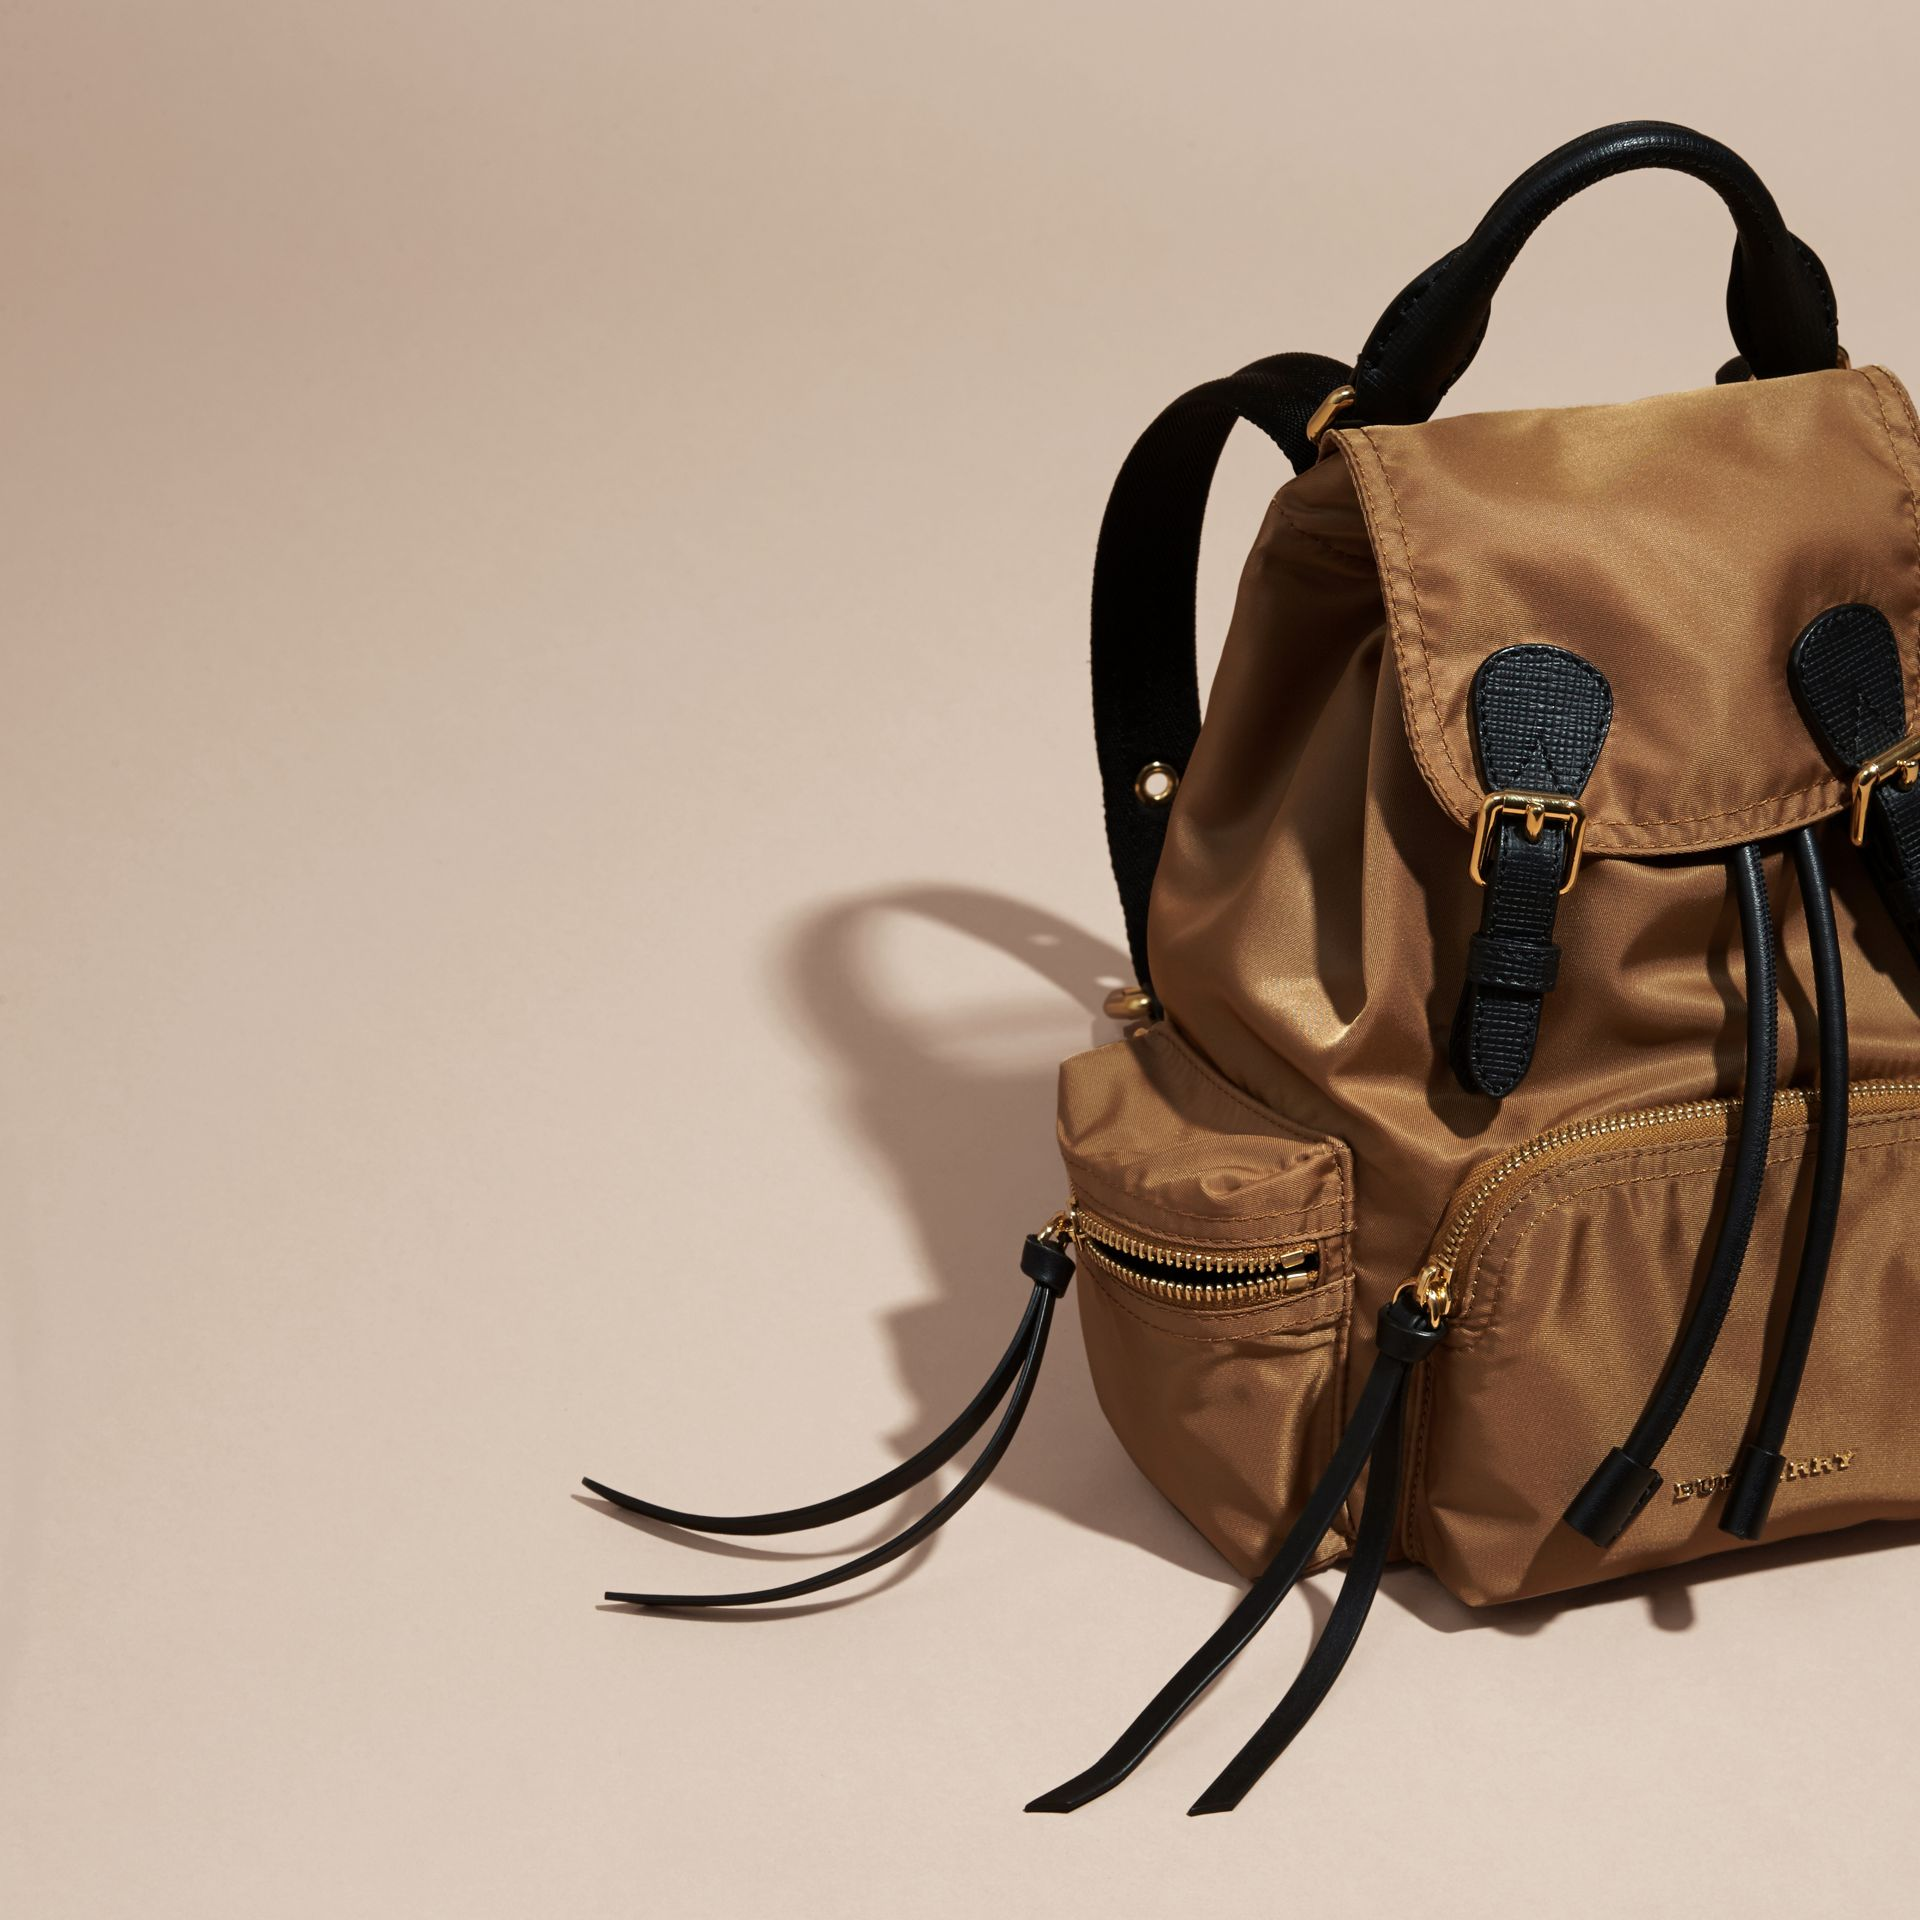 Light flax The Small Rucksack in Technical Nylon and Leather Light Flax - gallery image 6